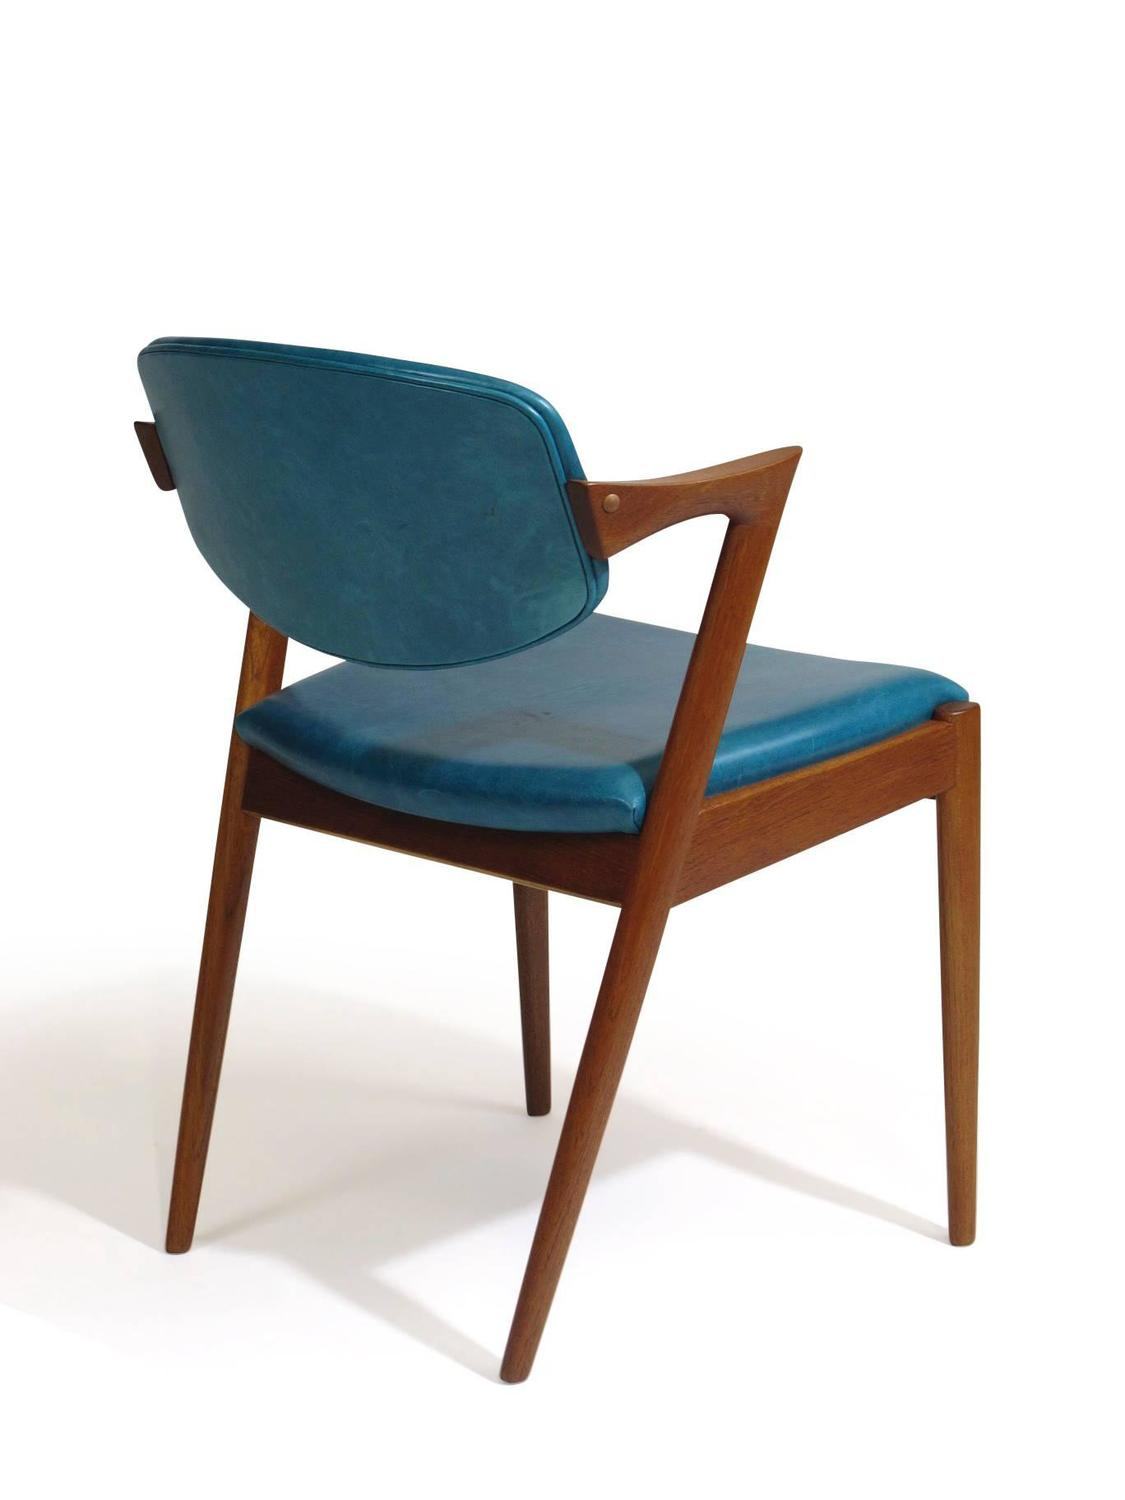 Six kai kristiansen teak danish dining chairs in turquoise leather 20 available for sale at 1stdibs - Turquoise upholstered dining chair ...